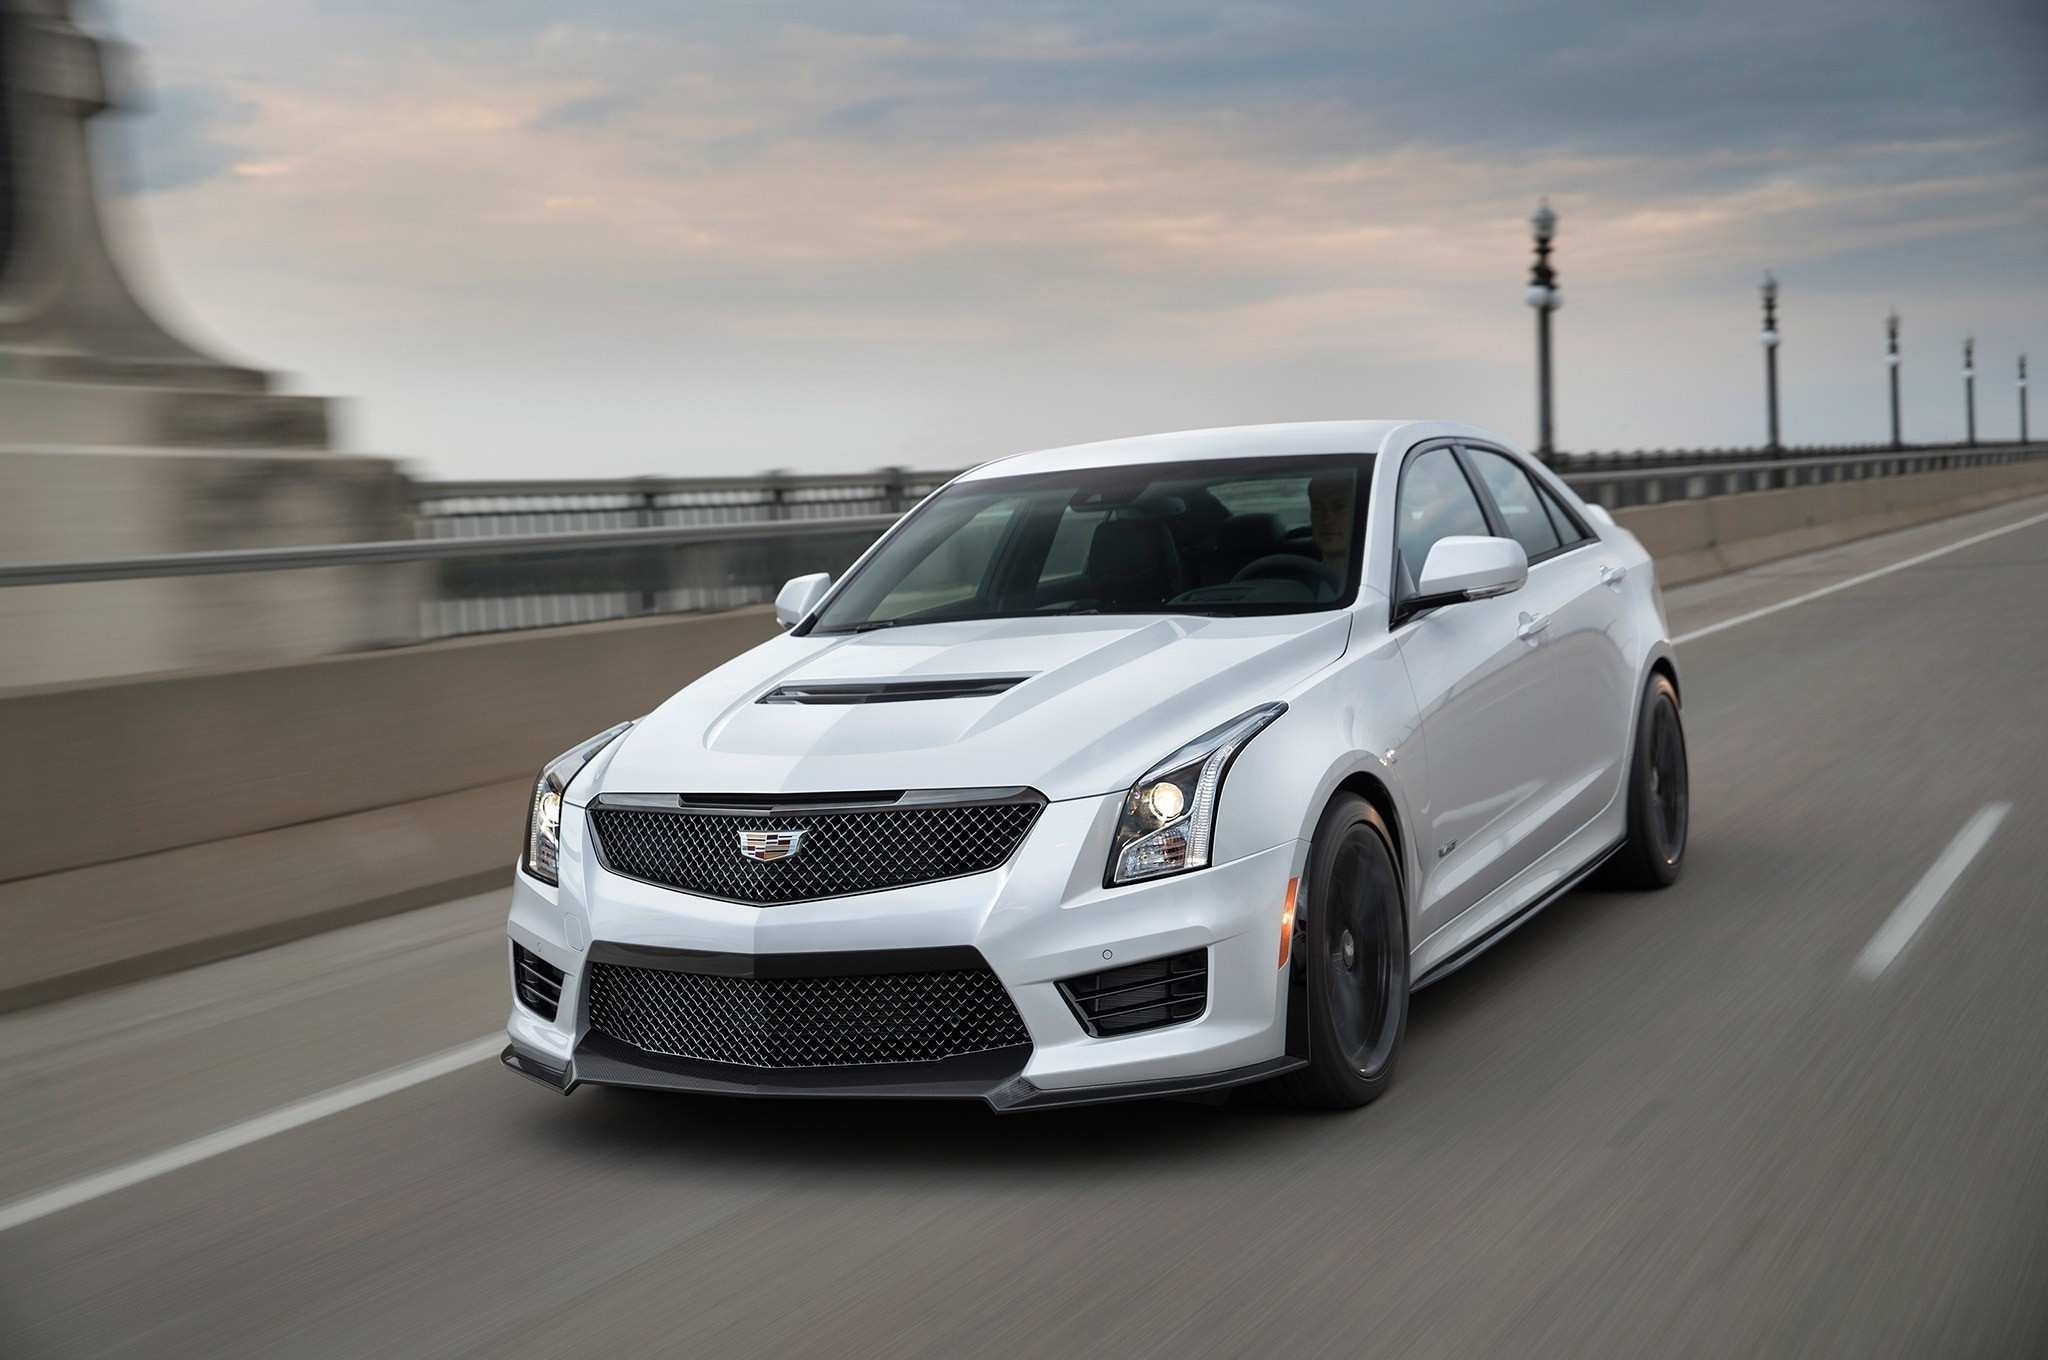 75 The Best 2019 Cadillac Ats Coupe Release Date New Review for Best 2019 Cadillac Ats Coupe Release Date